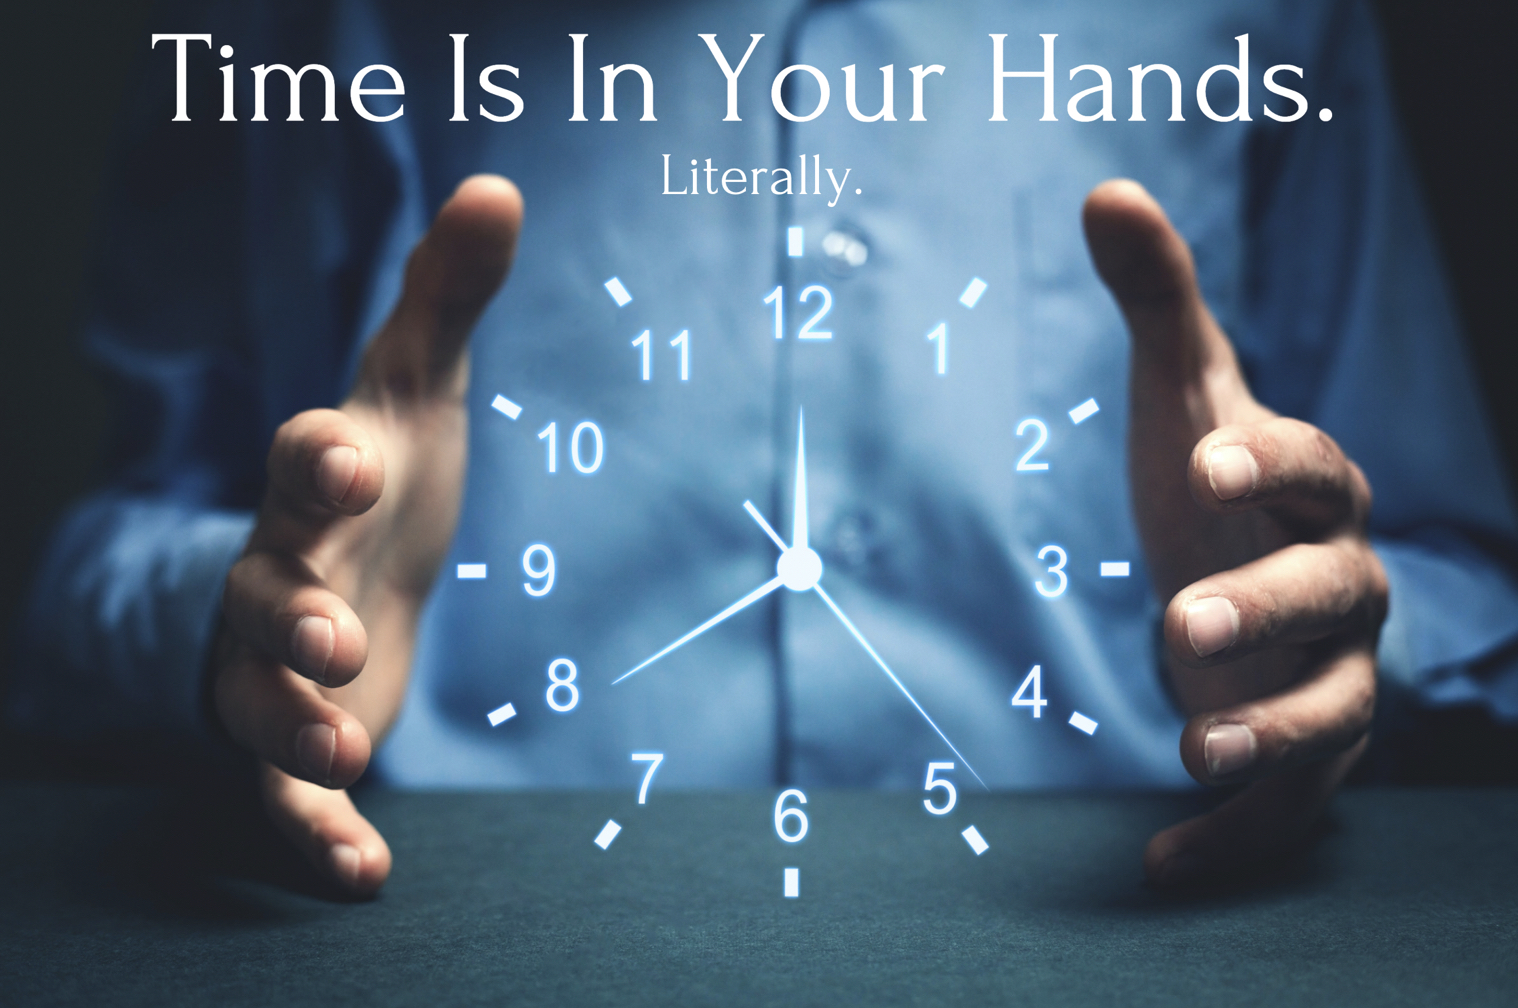 HANDS (words only)